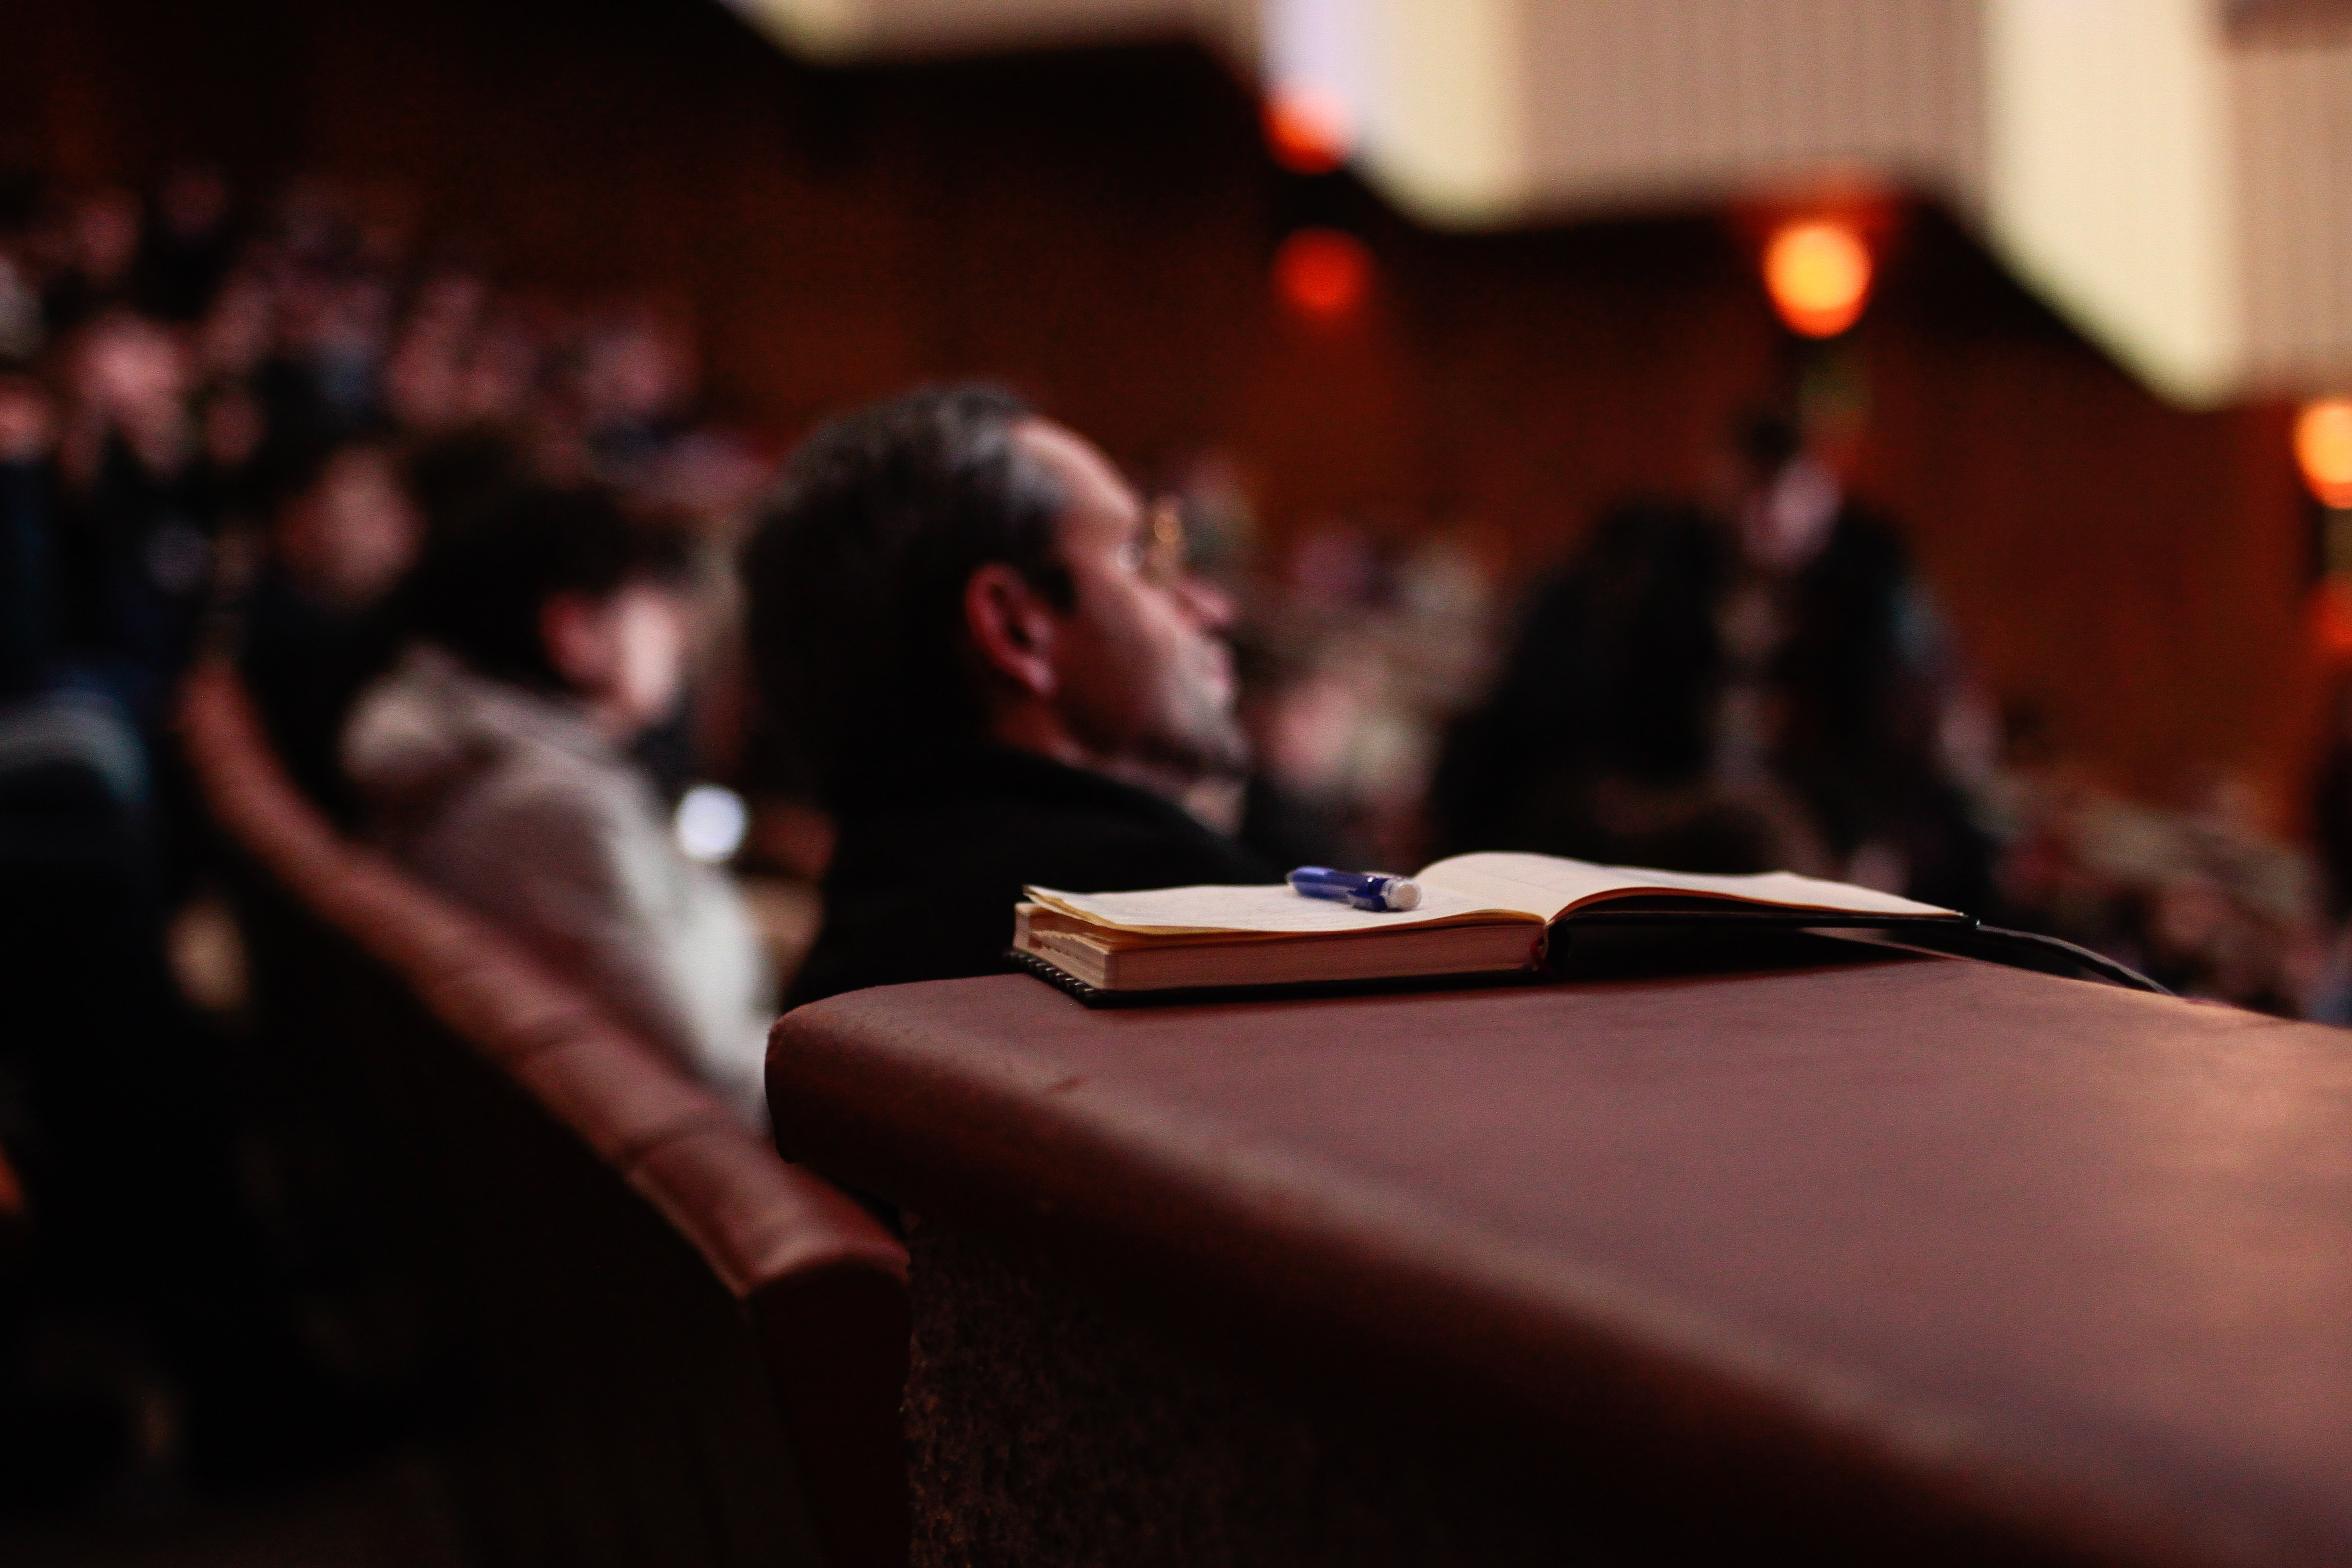 Advocate: Open notebook with a pen in an auditorium with people